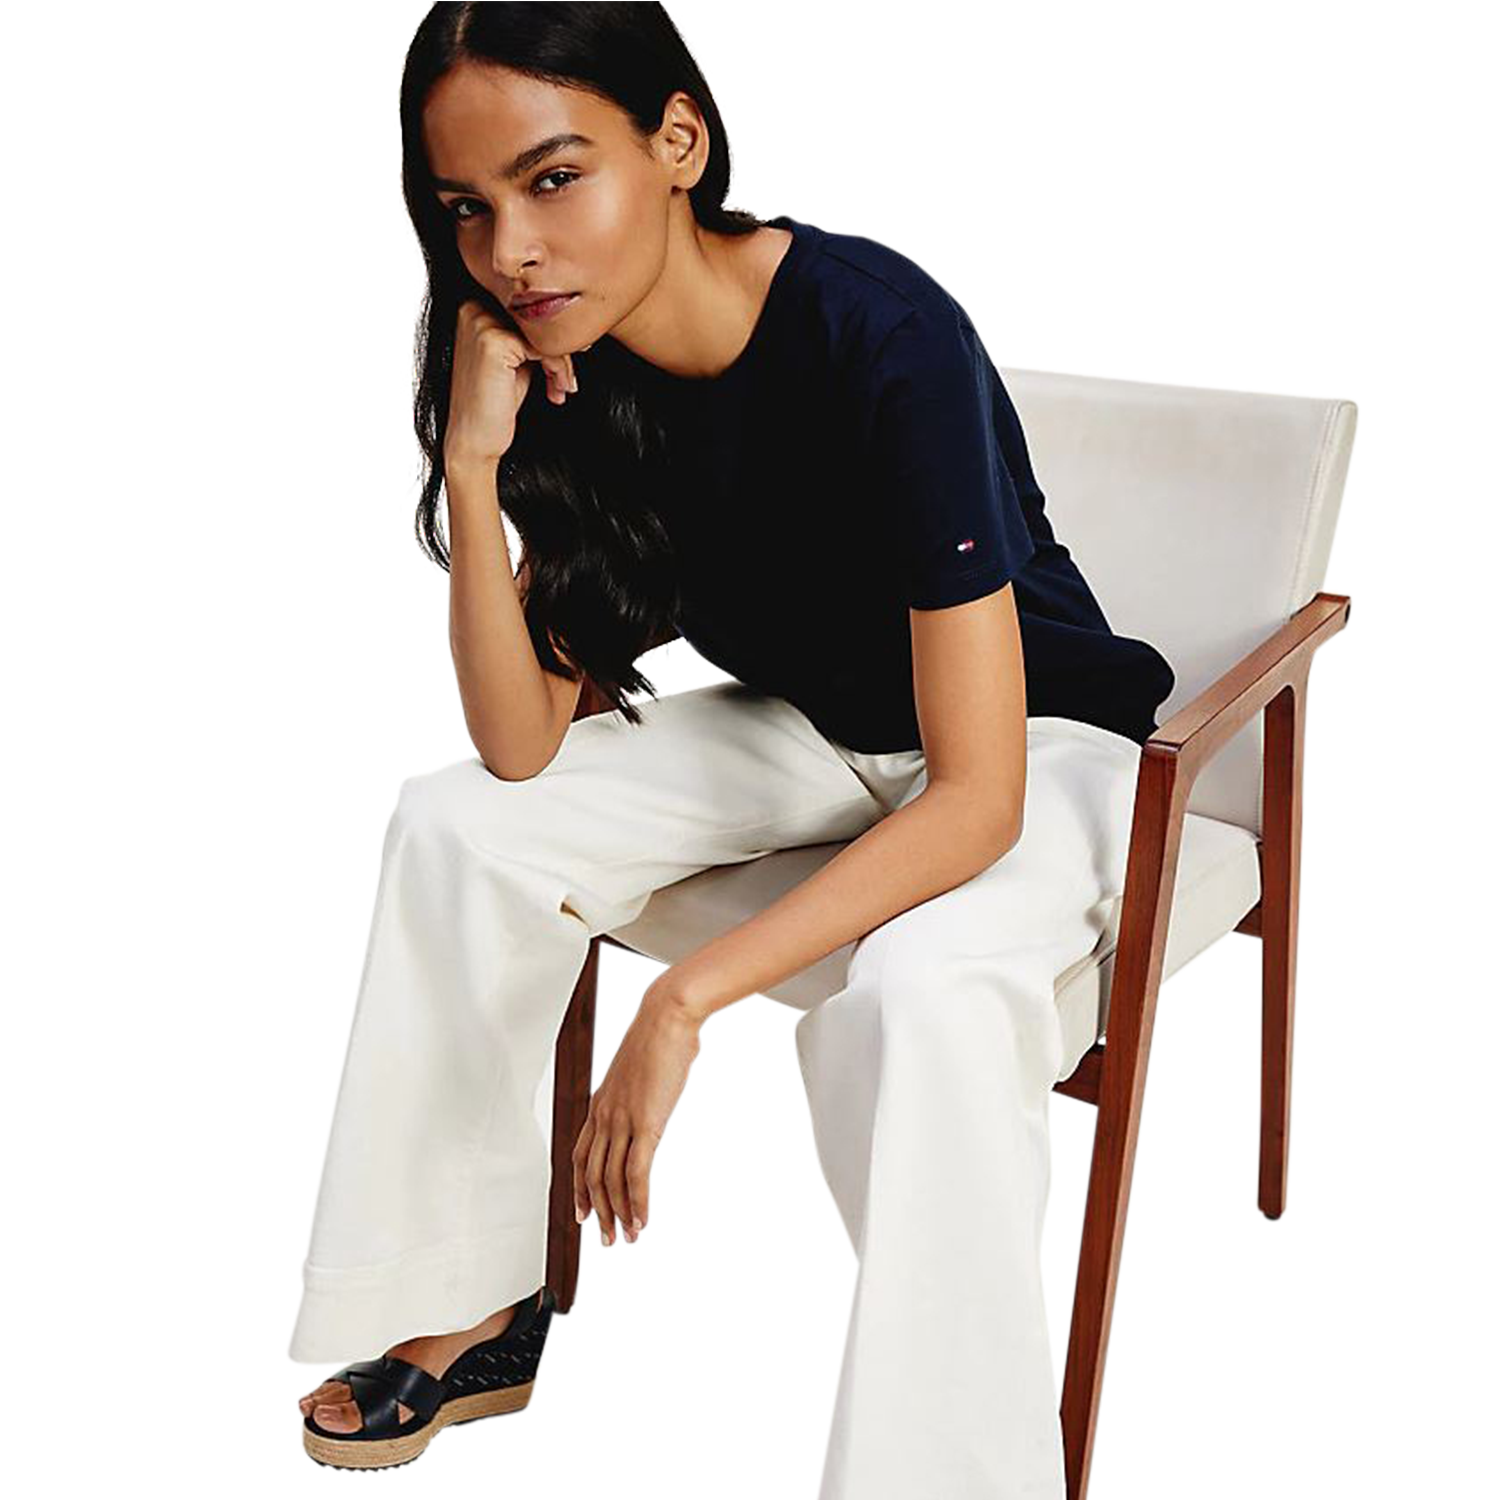 Tommy Hilfiger TH Cool Ess Relaxed C-Neck Tee T-Shirt, Damen Kurzarm, Desert Sky